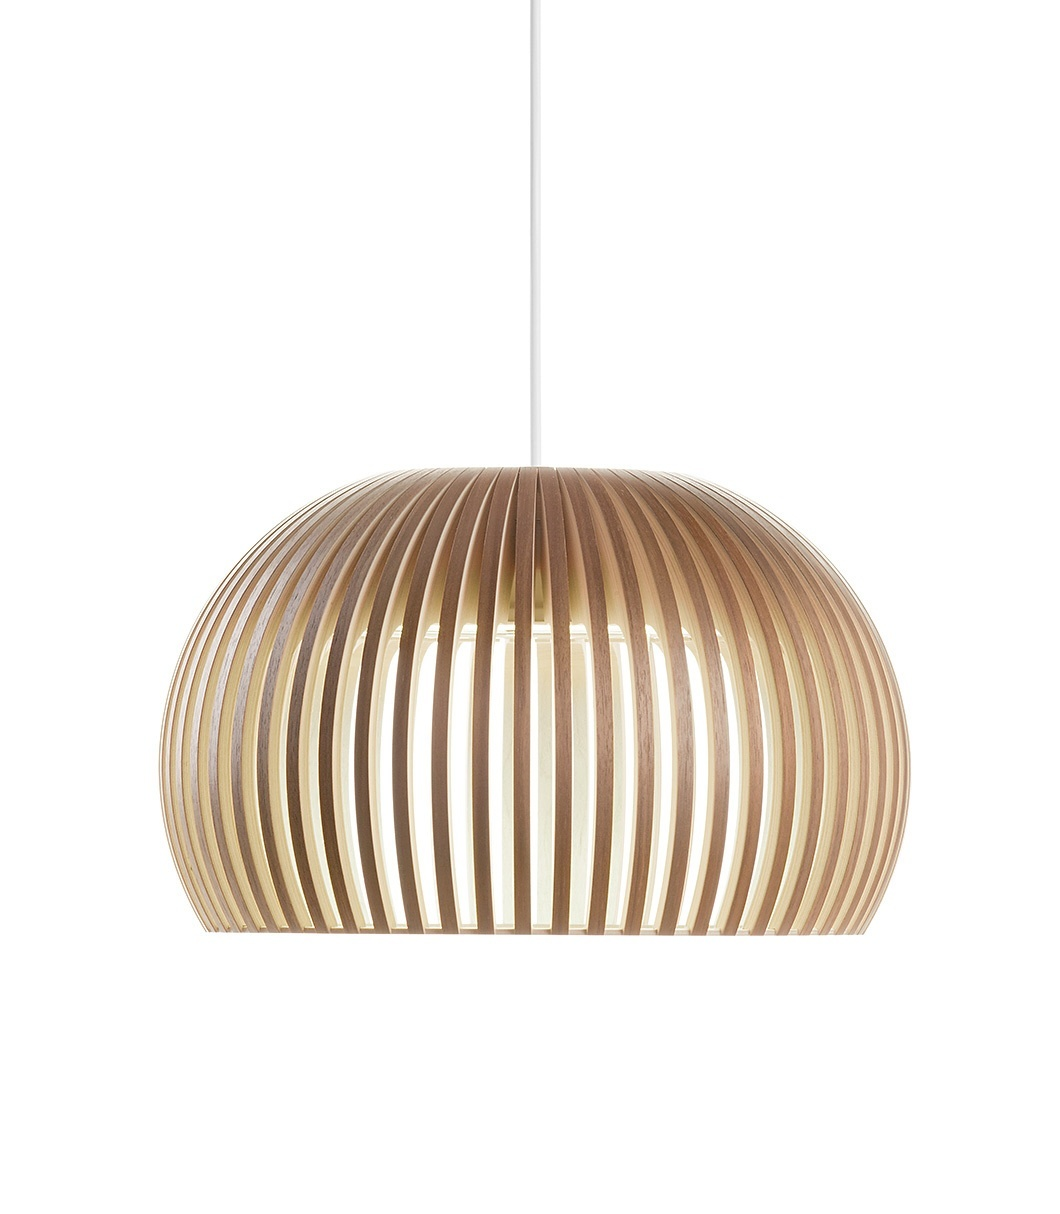 Secto Design Atto 5000 hanglamp-Walnoot